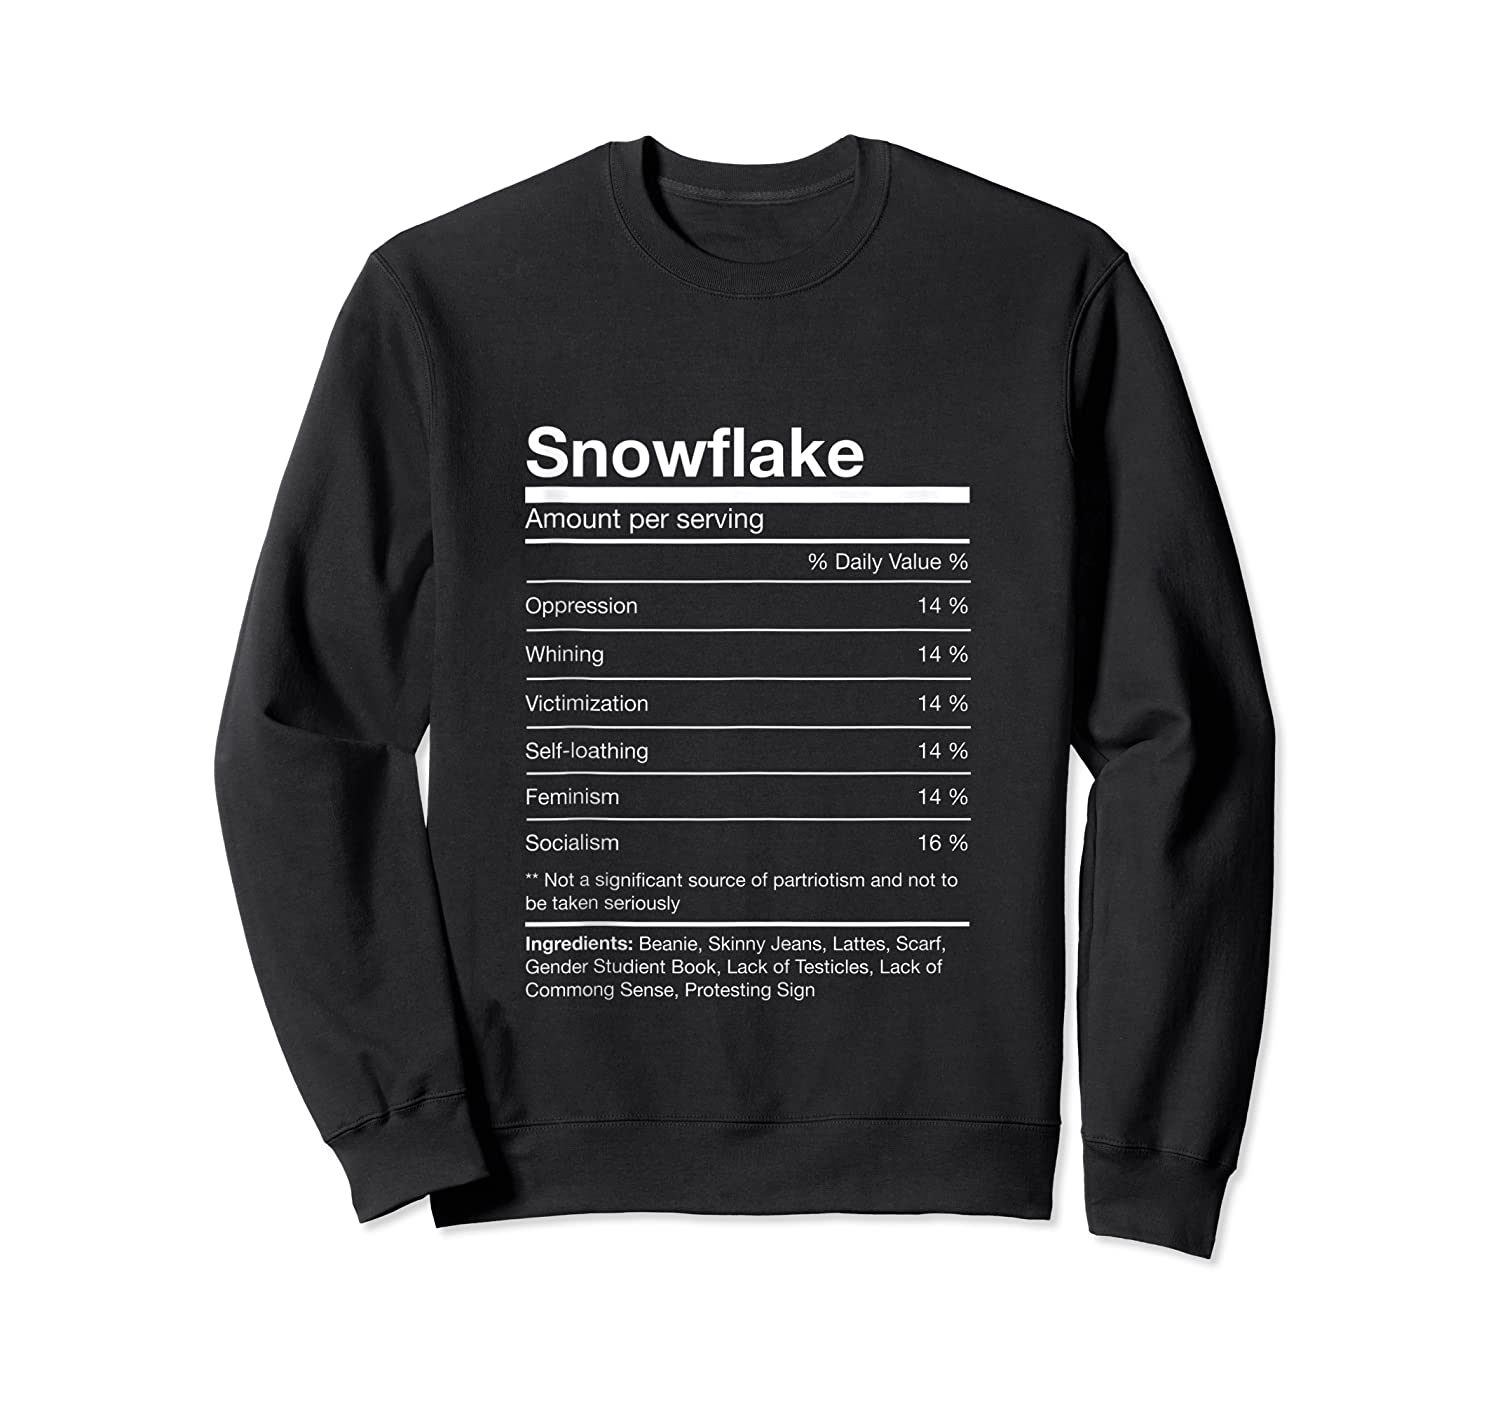 Funny Snowflake Nutrition Facts Family Christmas Parody Tank Top Shirts Crewneck Sweater